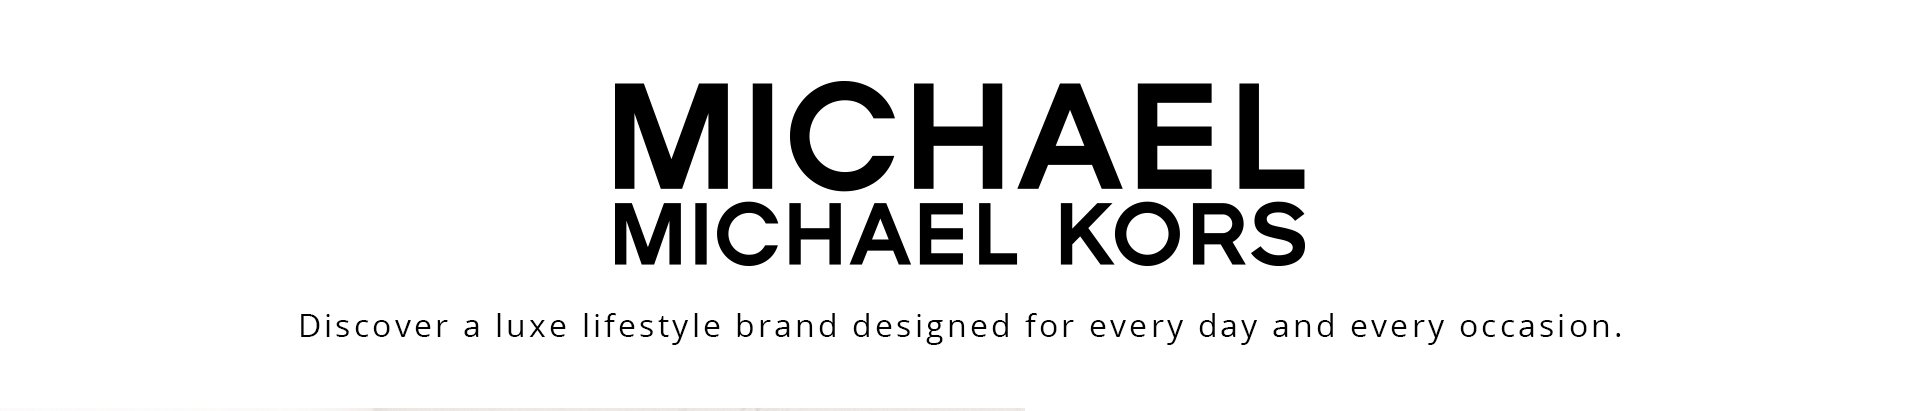 MICHAEL Michael Kors: Discover a luxe lifestyle brand designed for every day and every occasion.